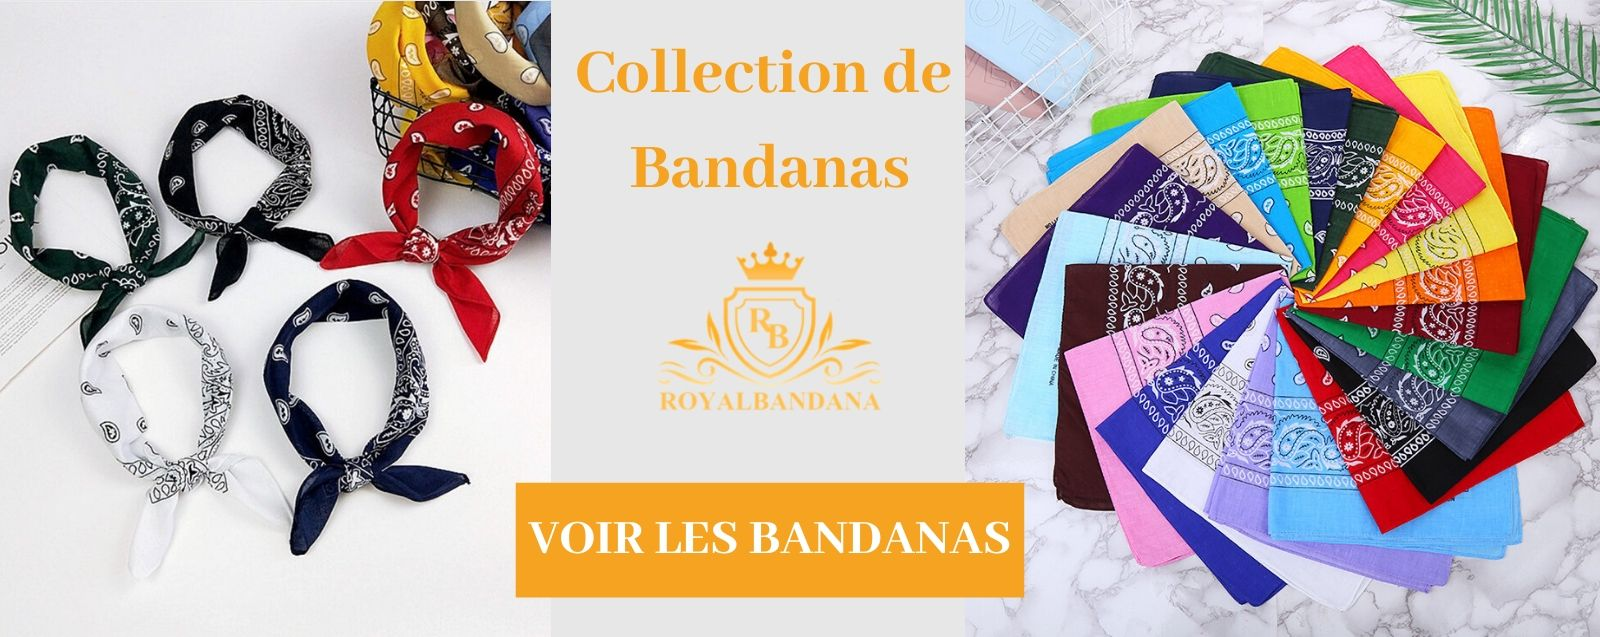 voir collection de bandanas royalbandana